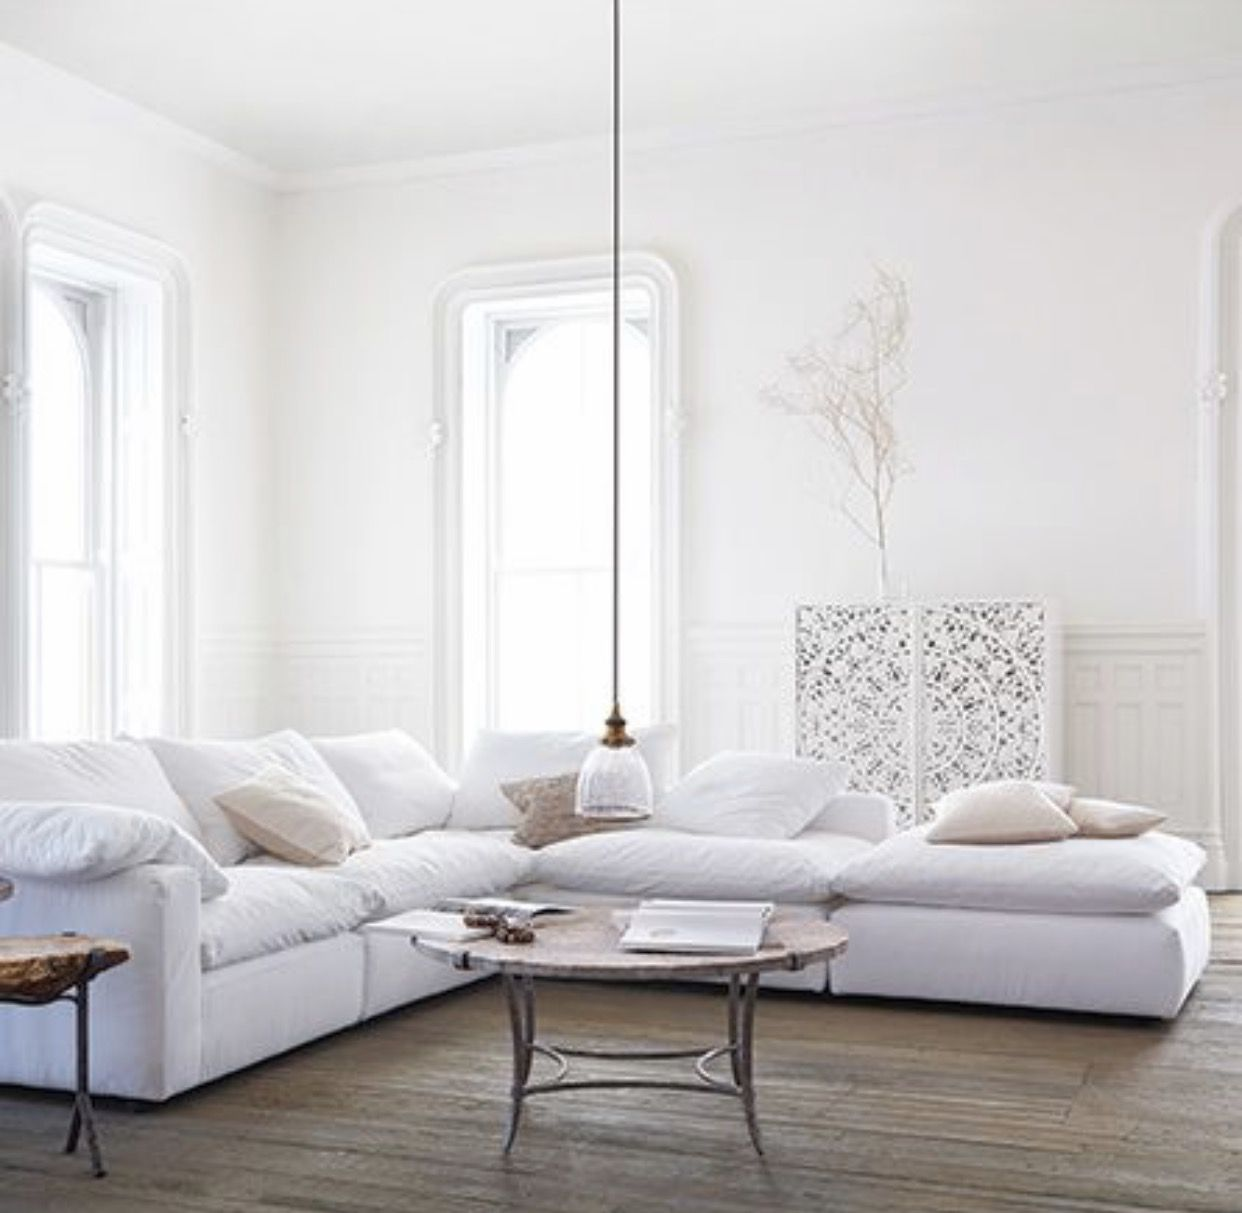 Arhaus Tahoe Sectional has to go with arhaus version of the cloud ...